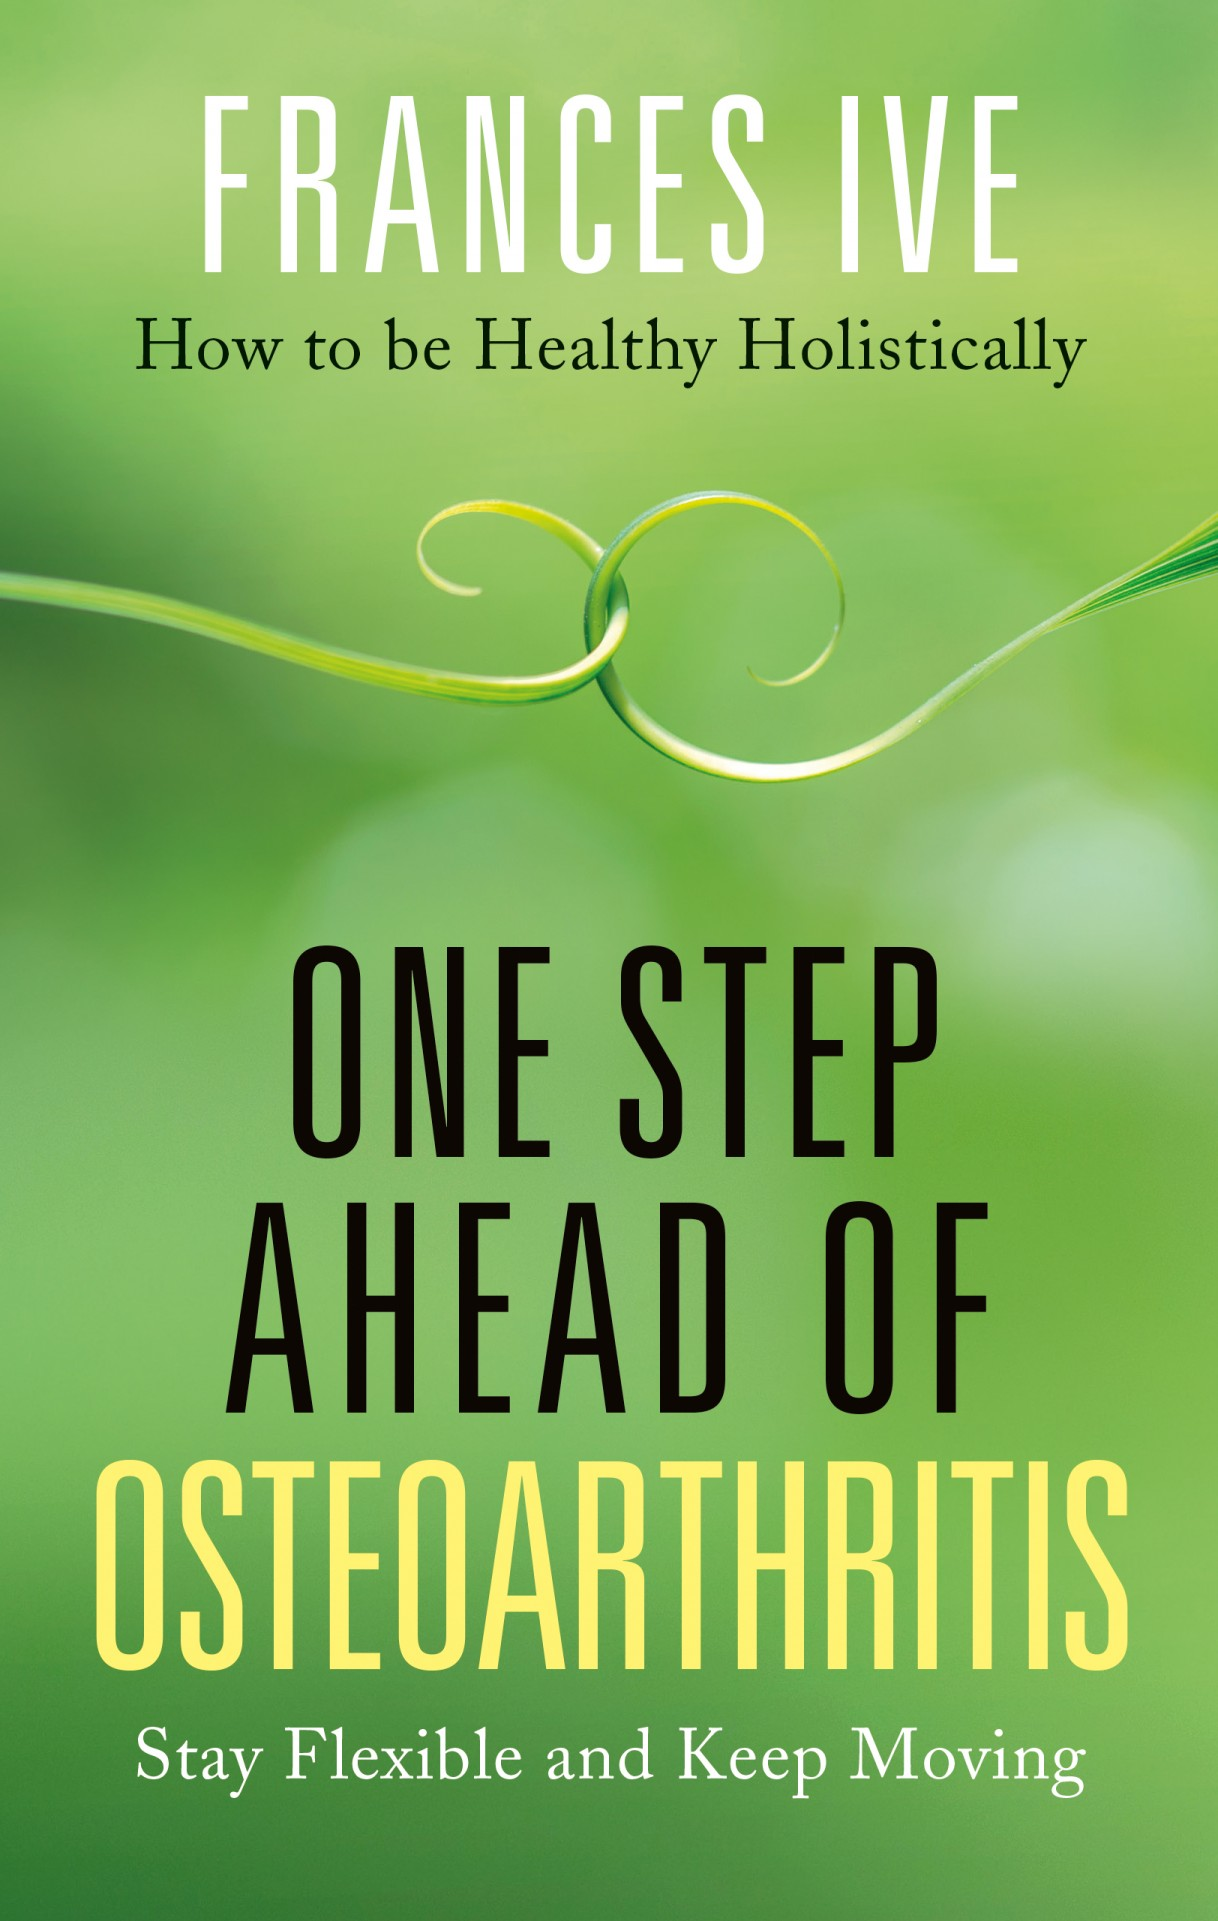 One Step Ahead of Osteoarthritis, Frances Ive, published by Hammersmith Health Books, available at Waterstones and Amazon.  https://www.waterstones.com/book/one-step-ahead-of-osteoarthritis/frances-ive/9781781611647  www.amazon.co.uk/One-Step-Ahead-Osteoarthritis-Frances/dp/1781611645